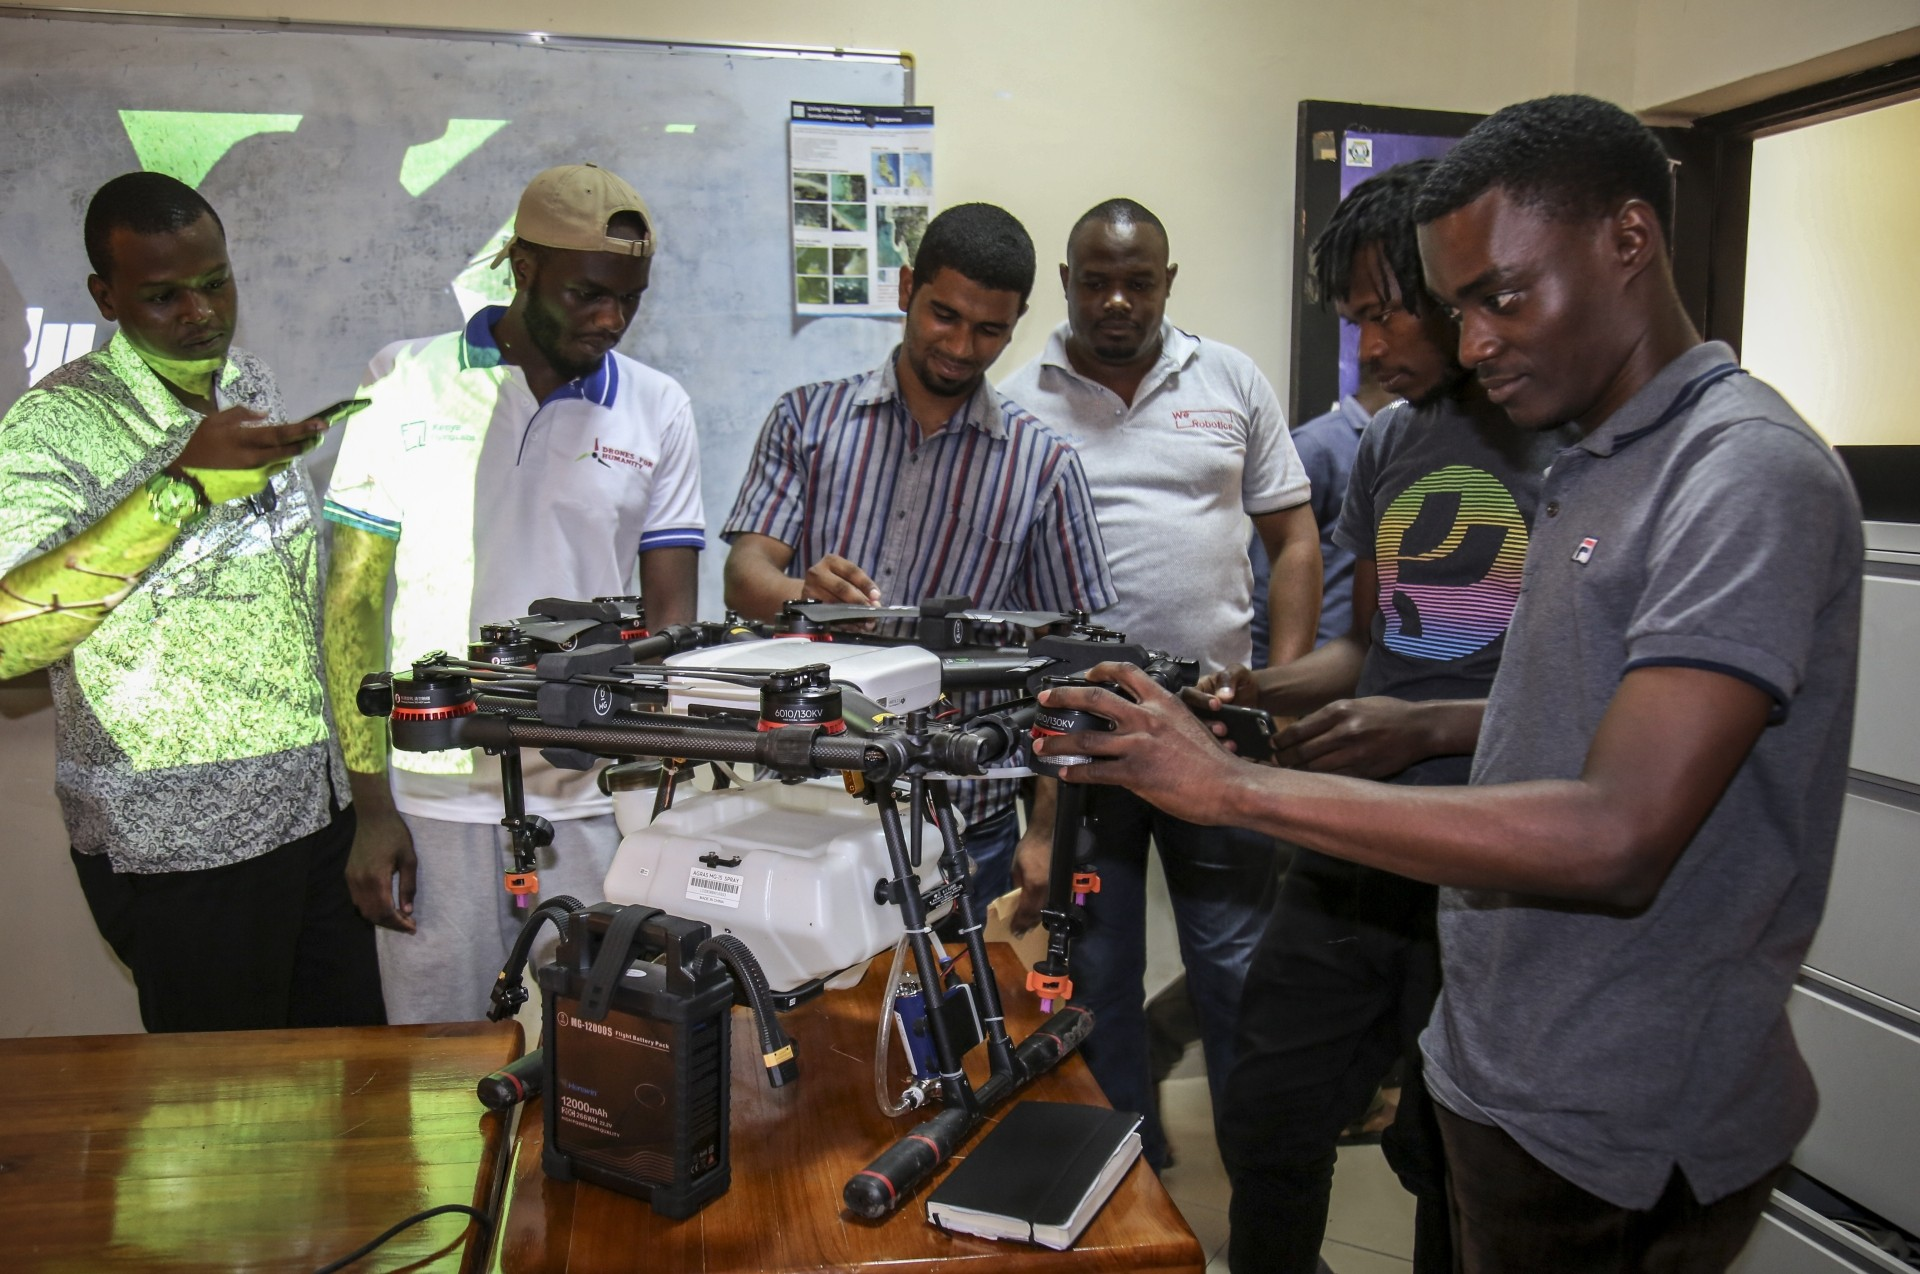 Trainee drone pilots from the State University of Zanzibar examine a drone to be used to spray the breeding grounds of malaria-carrying mosquitoes, at Cheju paddy farms in the southern Cheju region of the island of Zanzibar.